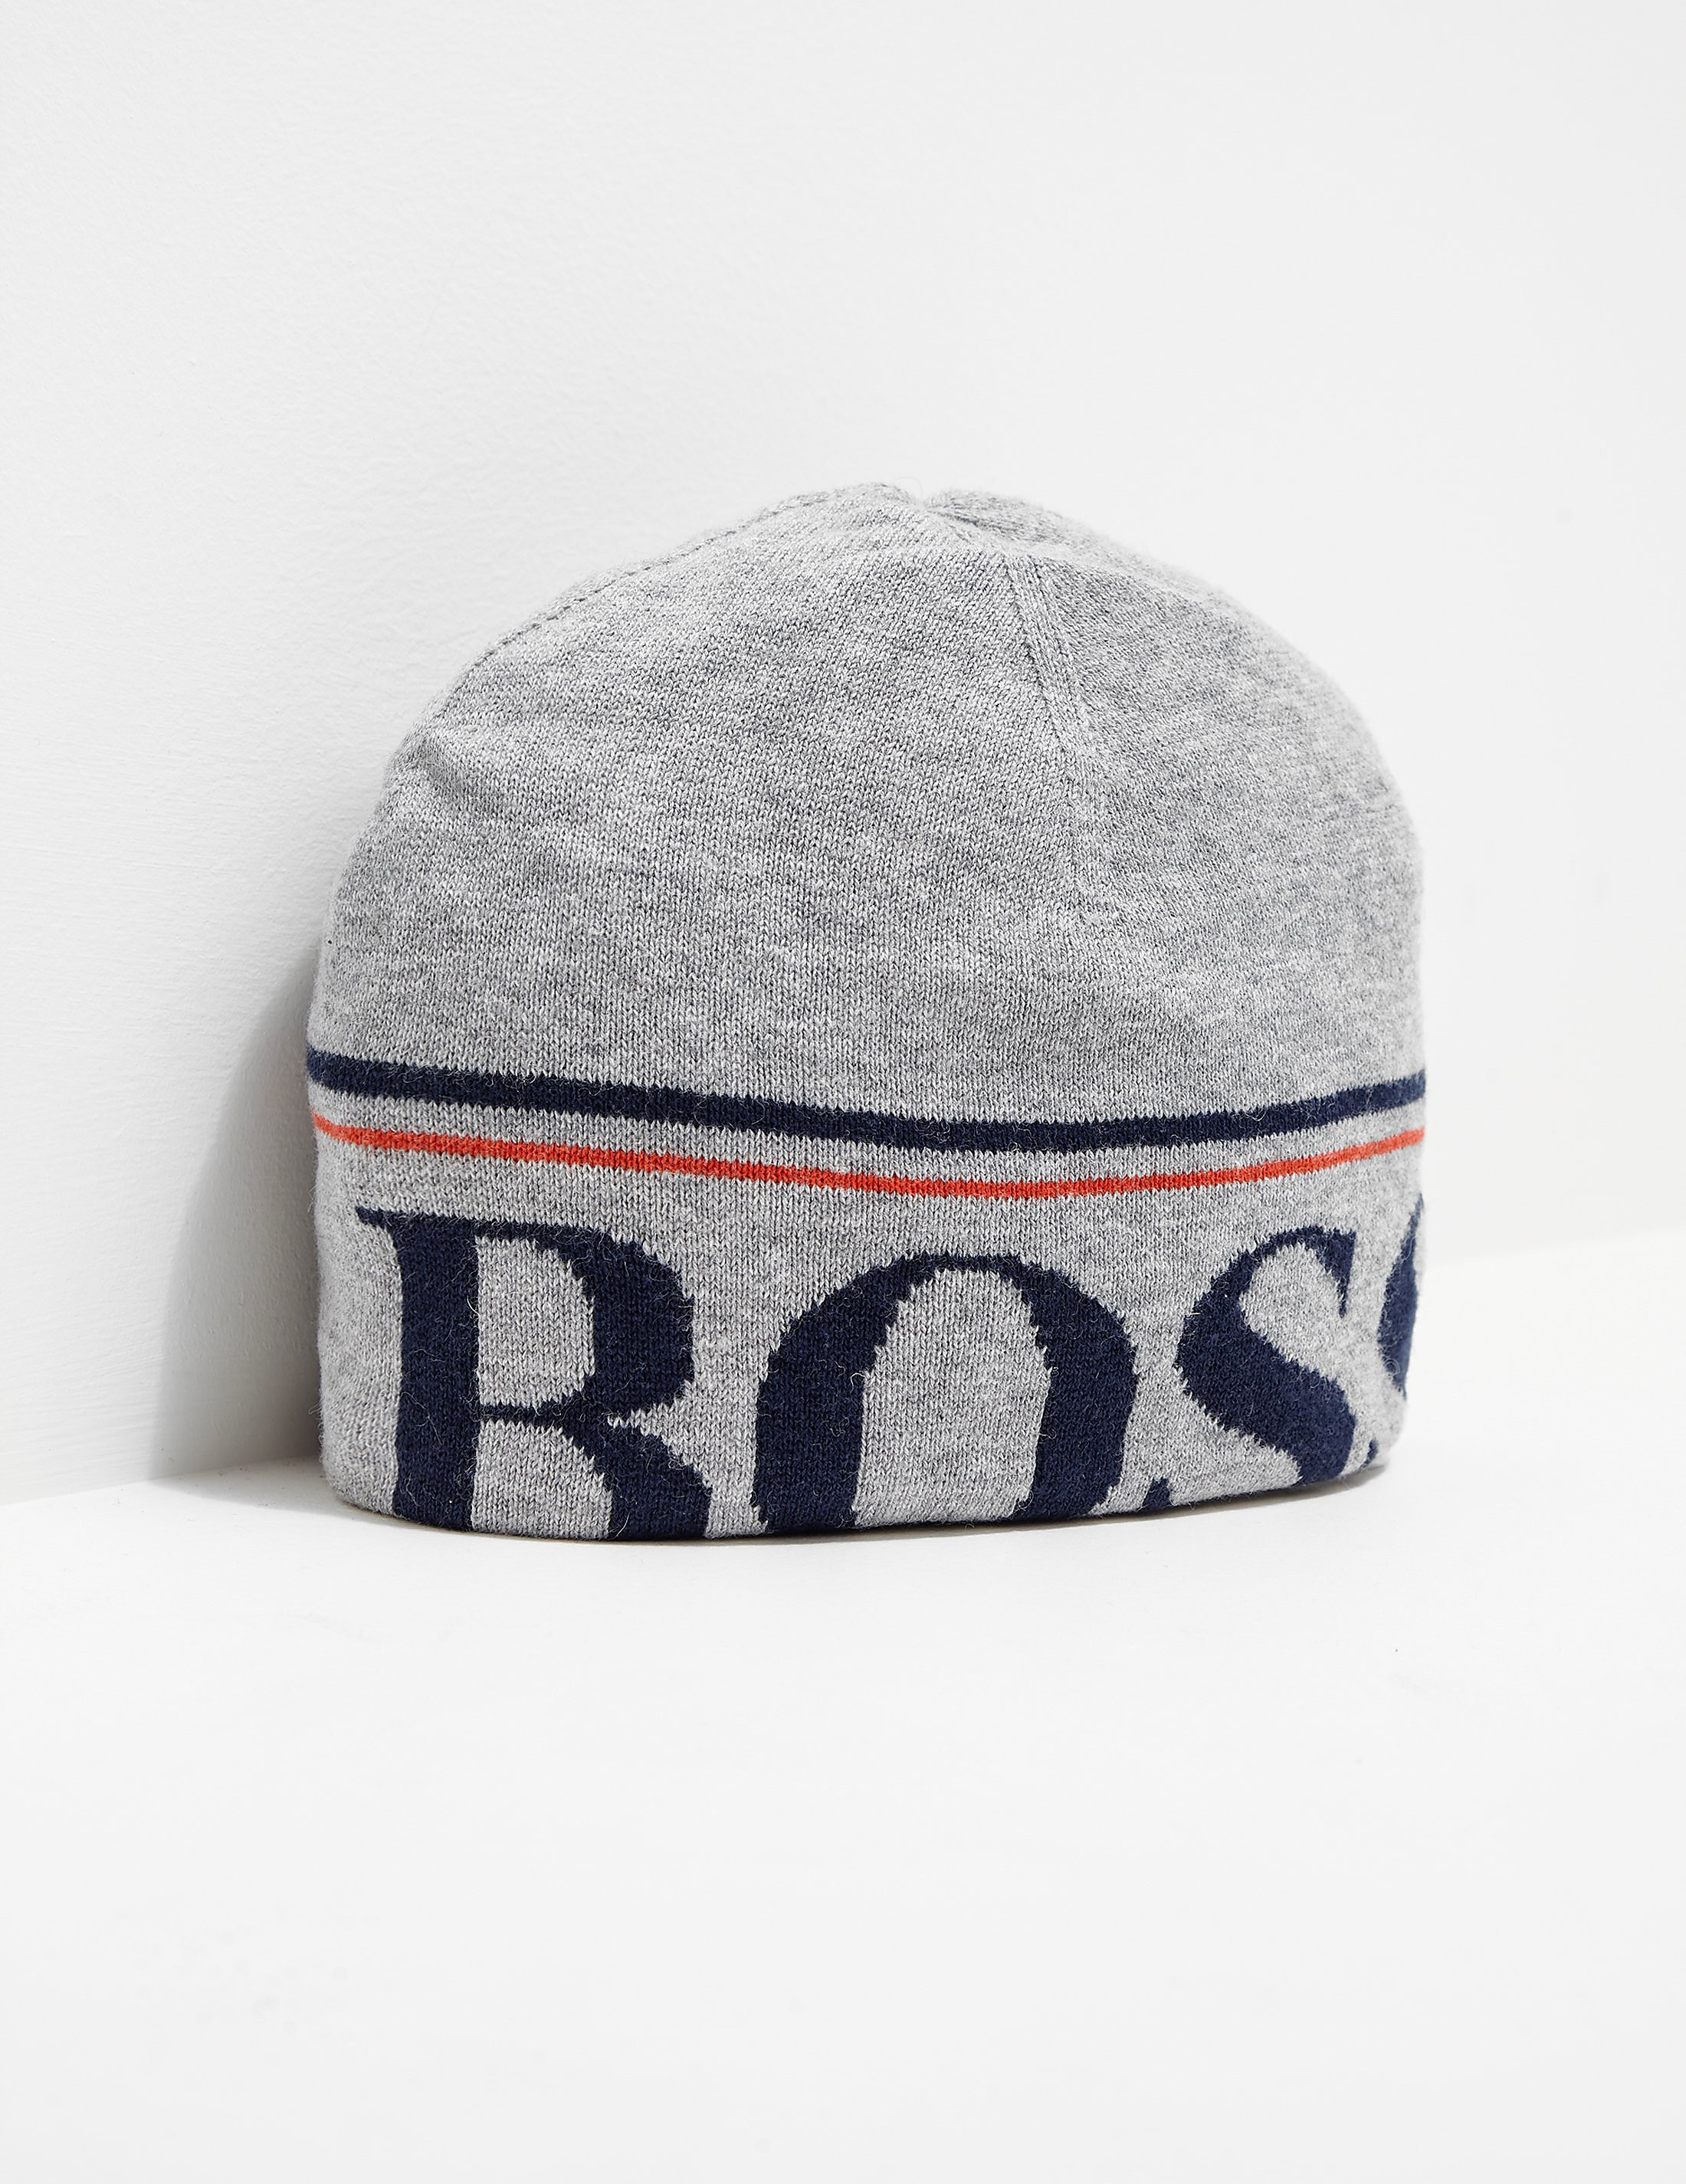 BOSS Kids' Logo Beanie Hat